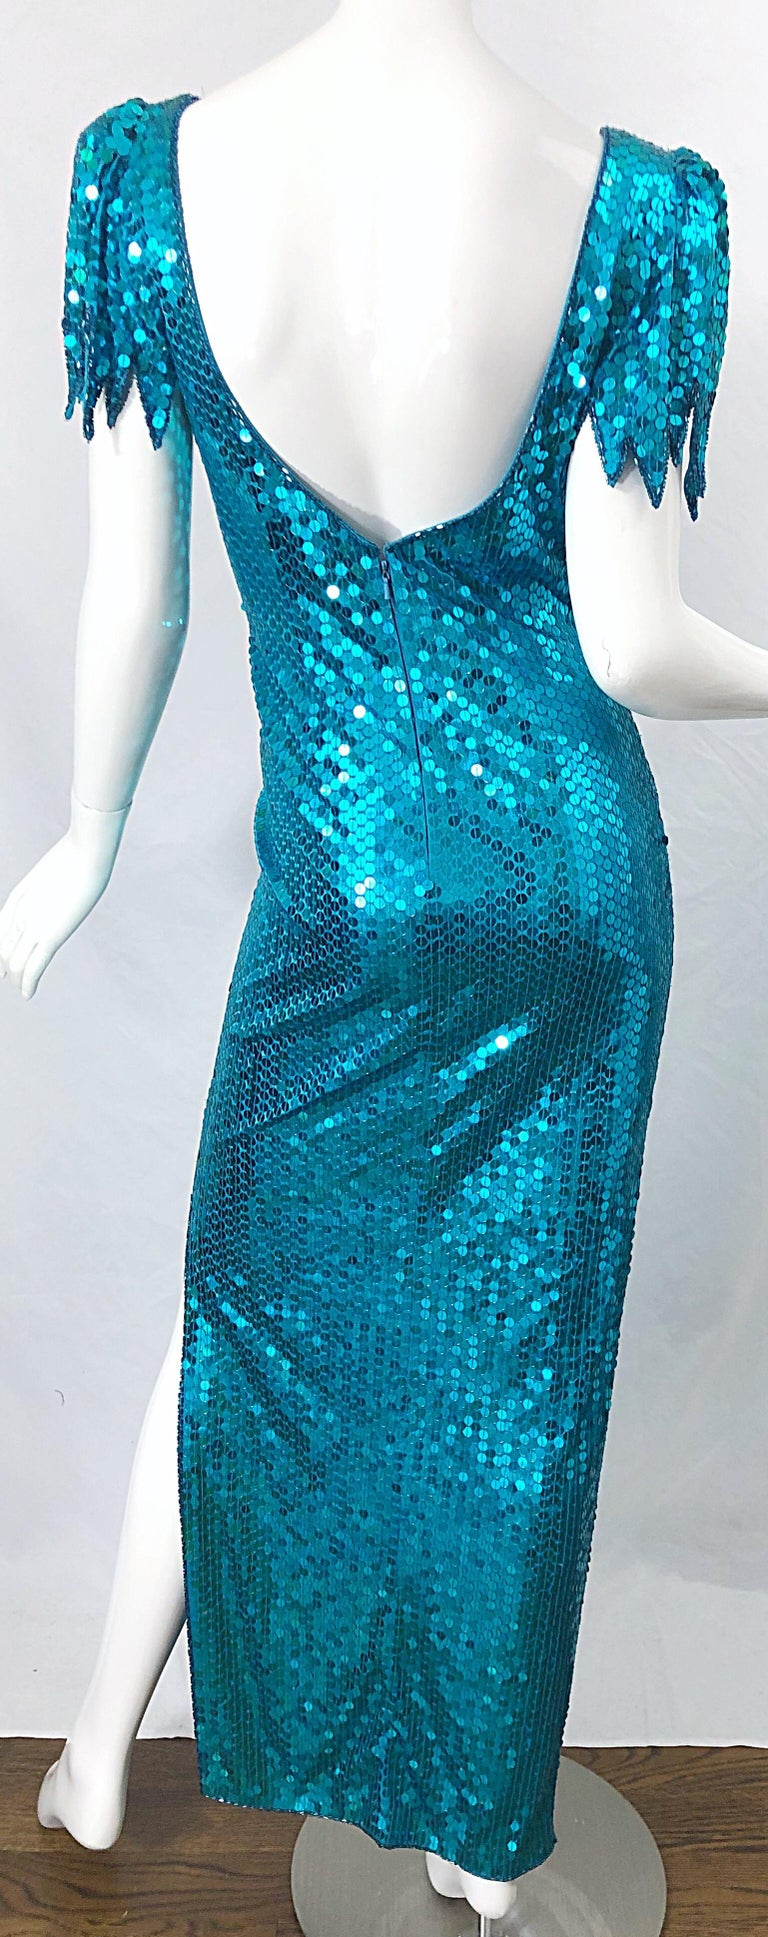 1980s Ted Lapidus Size 10 Turquoise Blue Avant Garde Sequined Vintage 80s Gown  For Sale 9